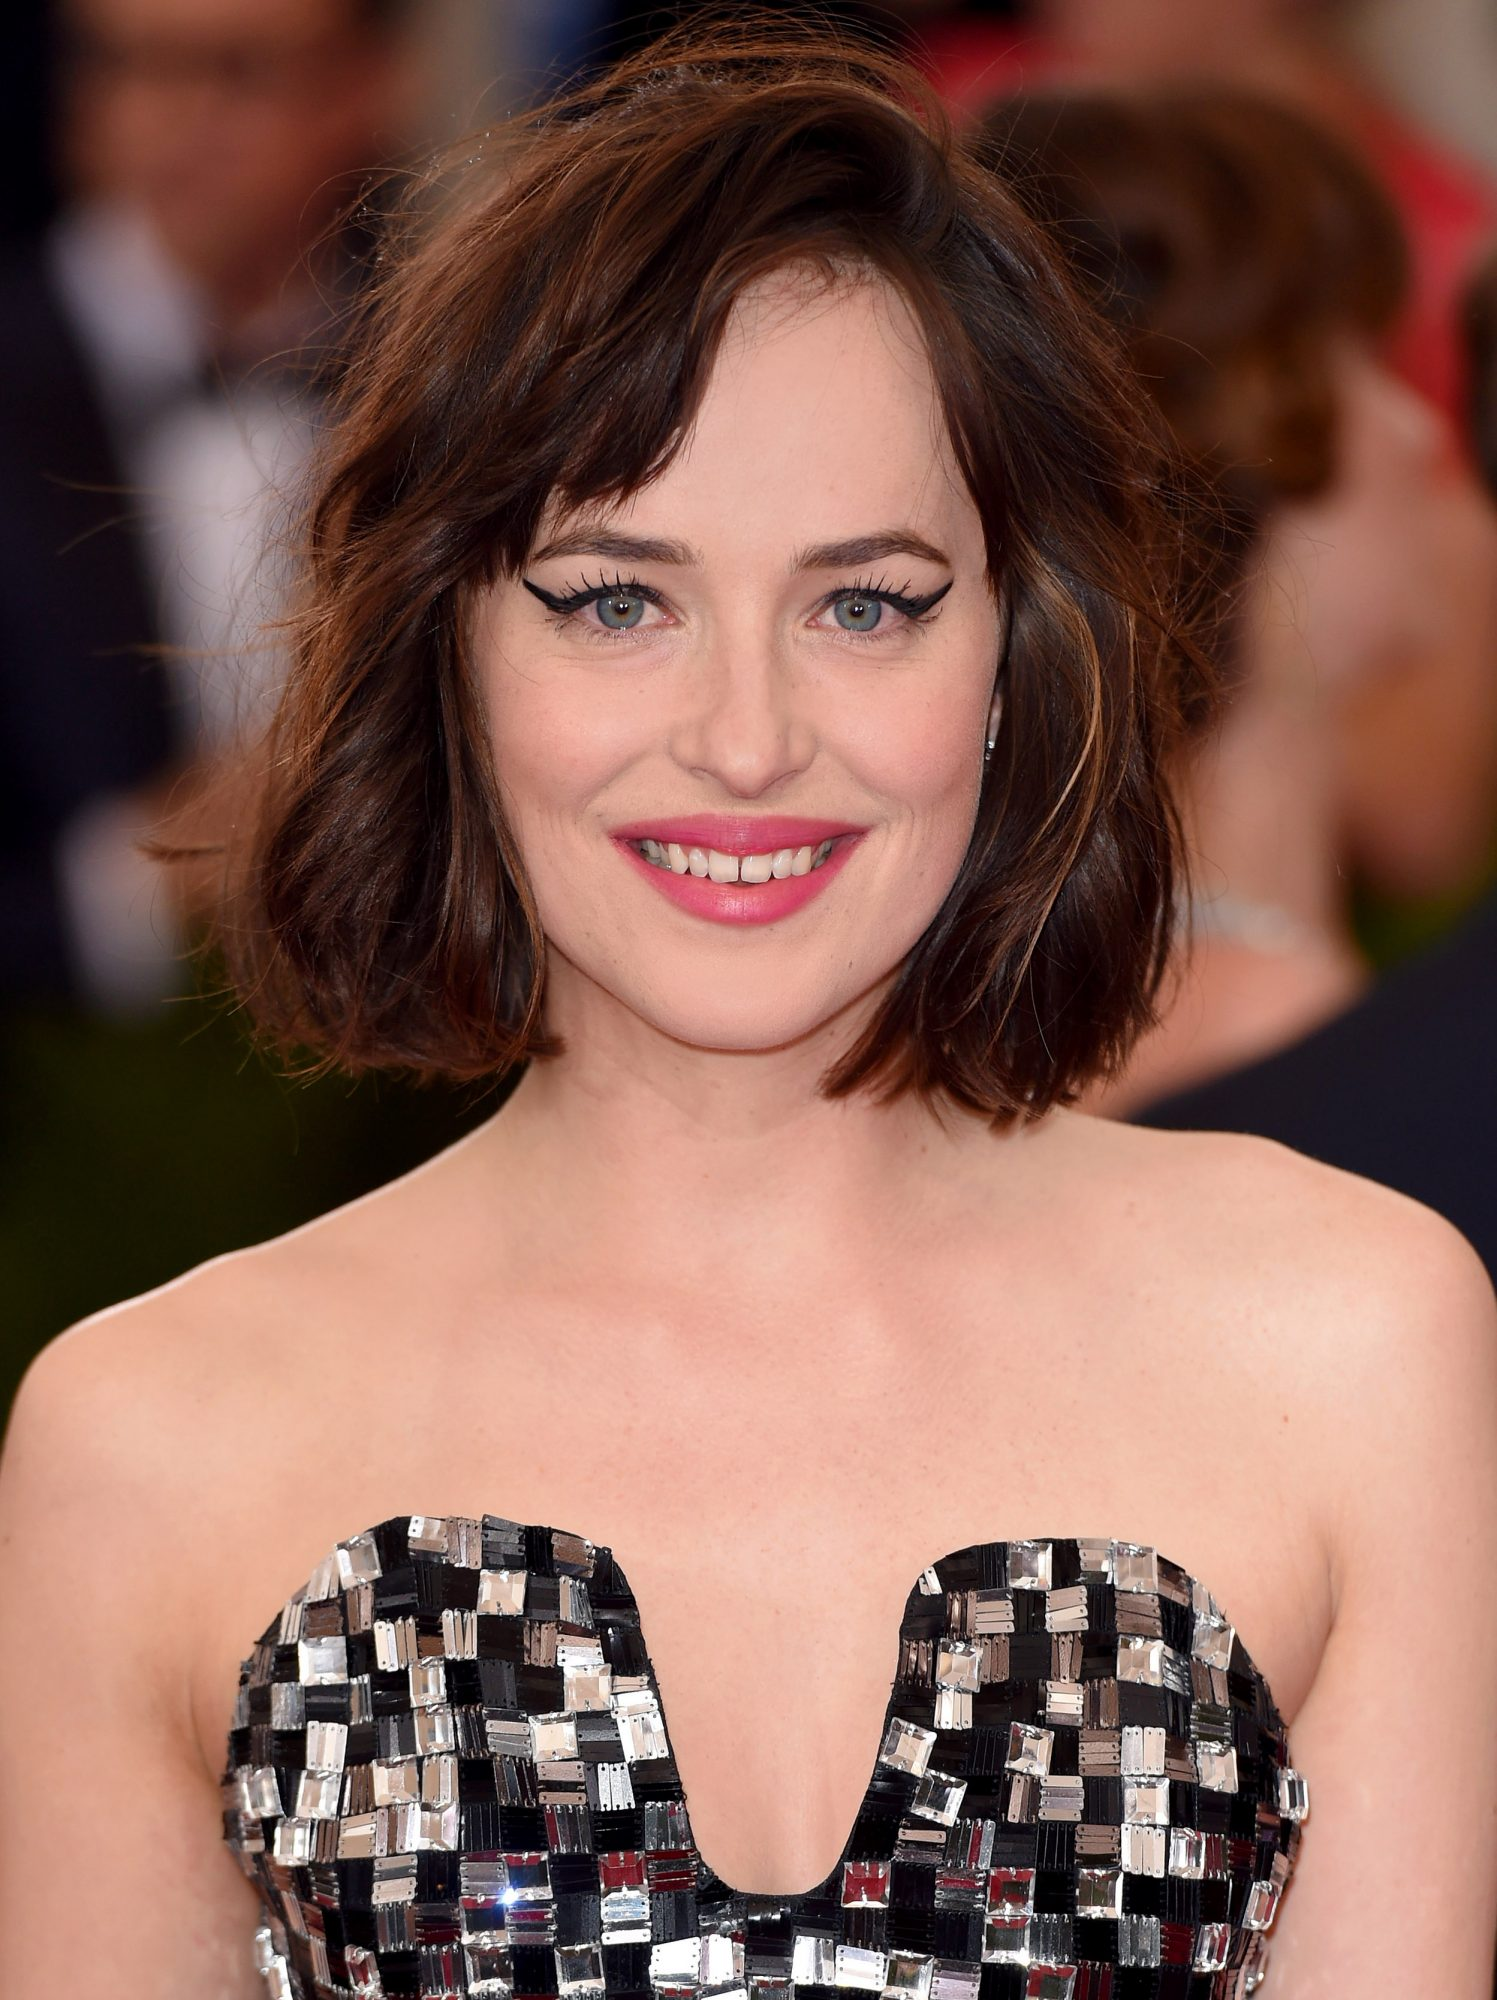 Dakota Johnson Joins Instagram—See Her First Posts!